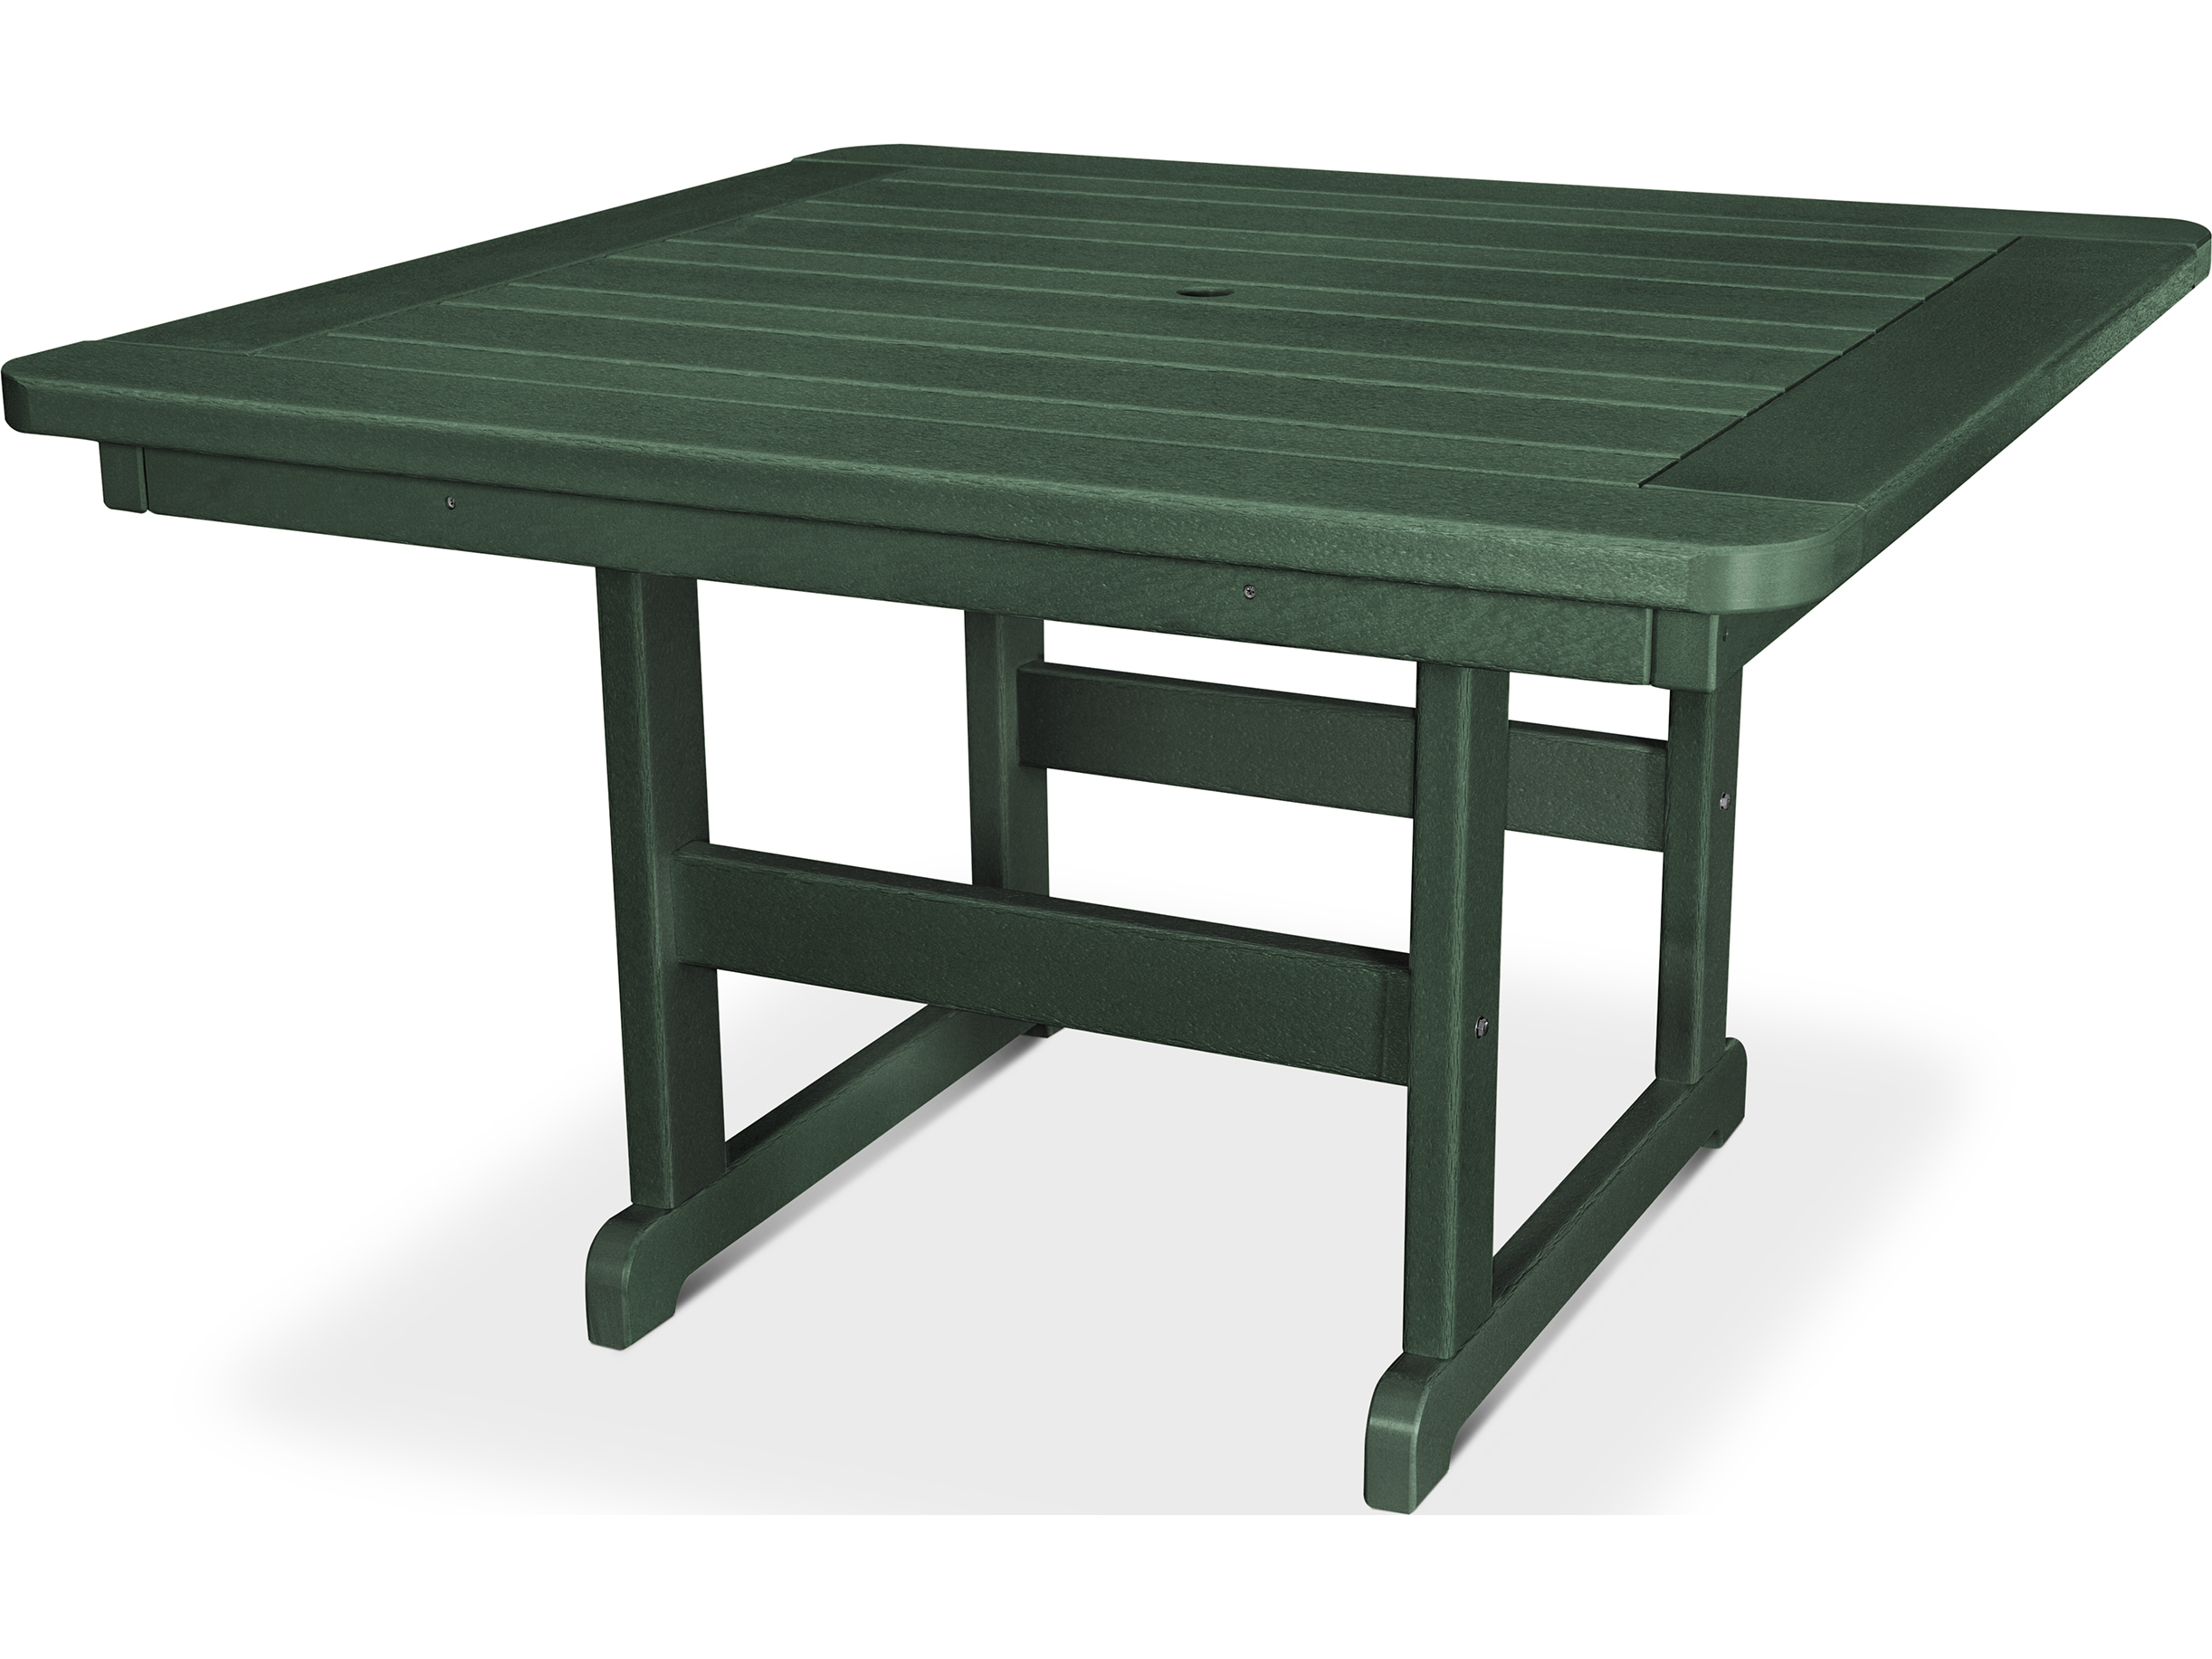 polywood park recycled plastic 48 square table pst48. Black Bedroom Furniture Sets. Home Design Ideas